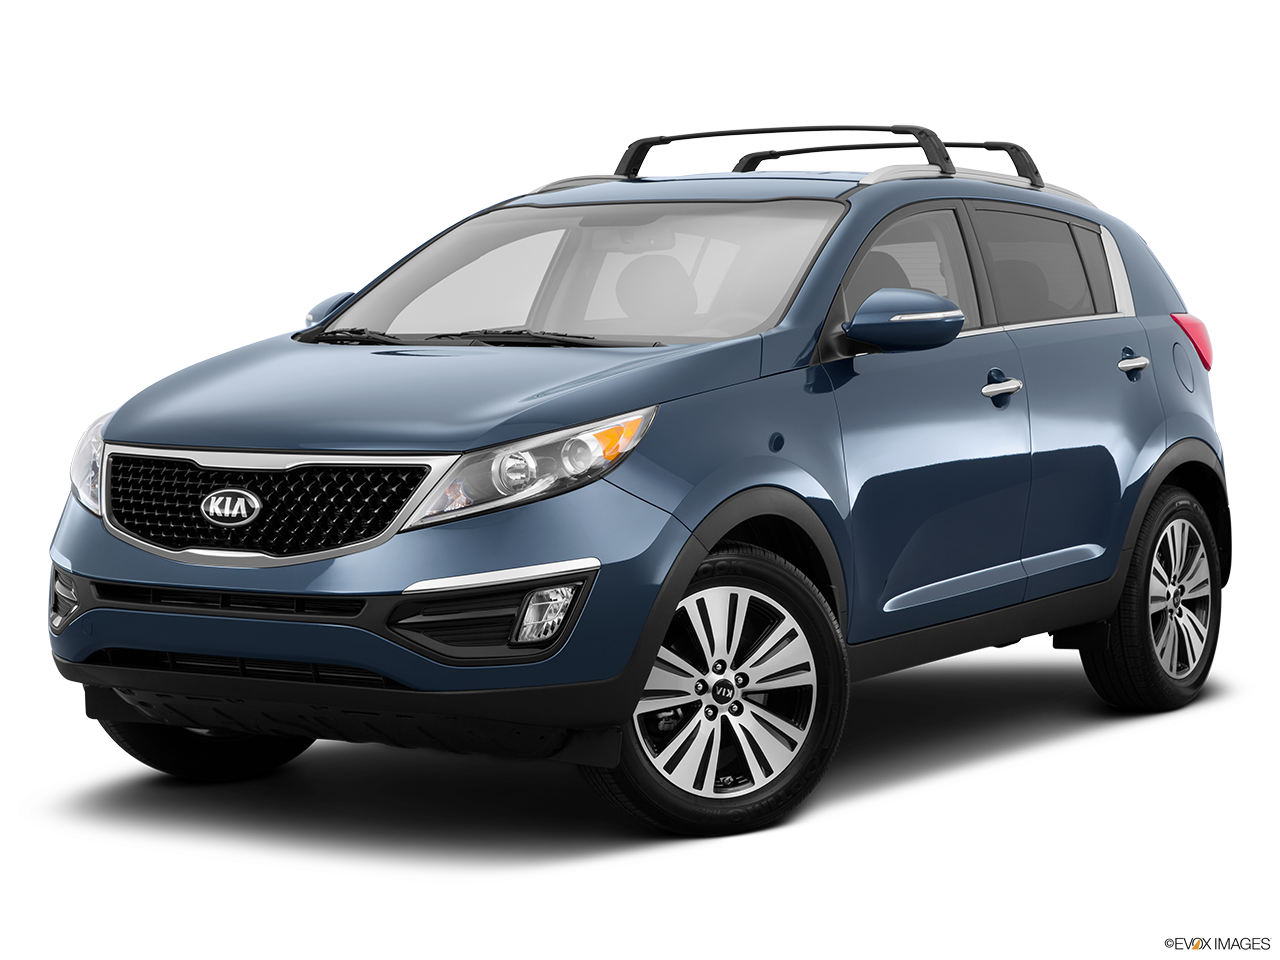 2015 kia sportage dealer serving san bernardino valley hi kia. Black Bedroom Furniture Sets. Home Design Ideas